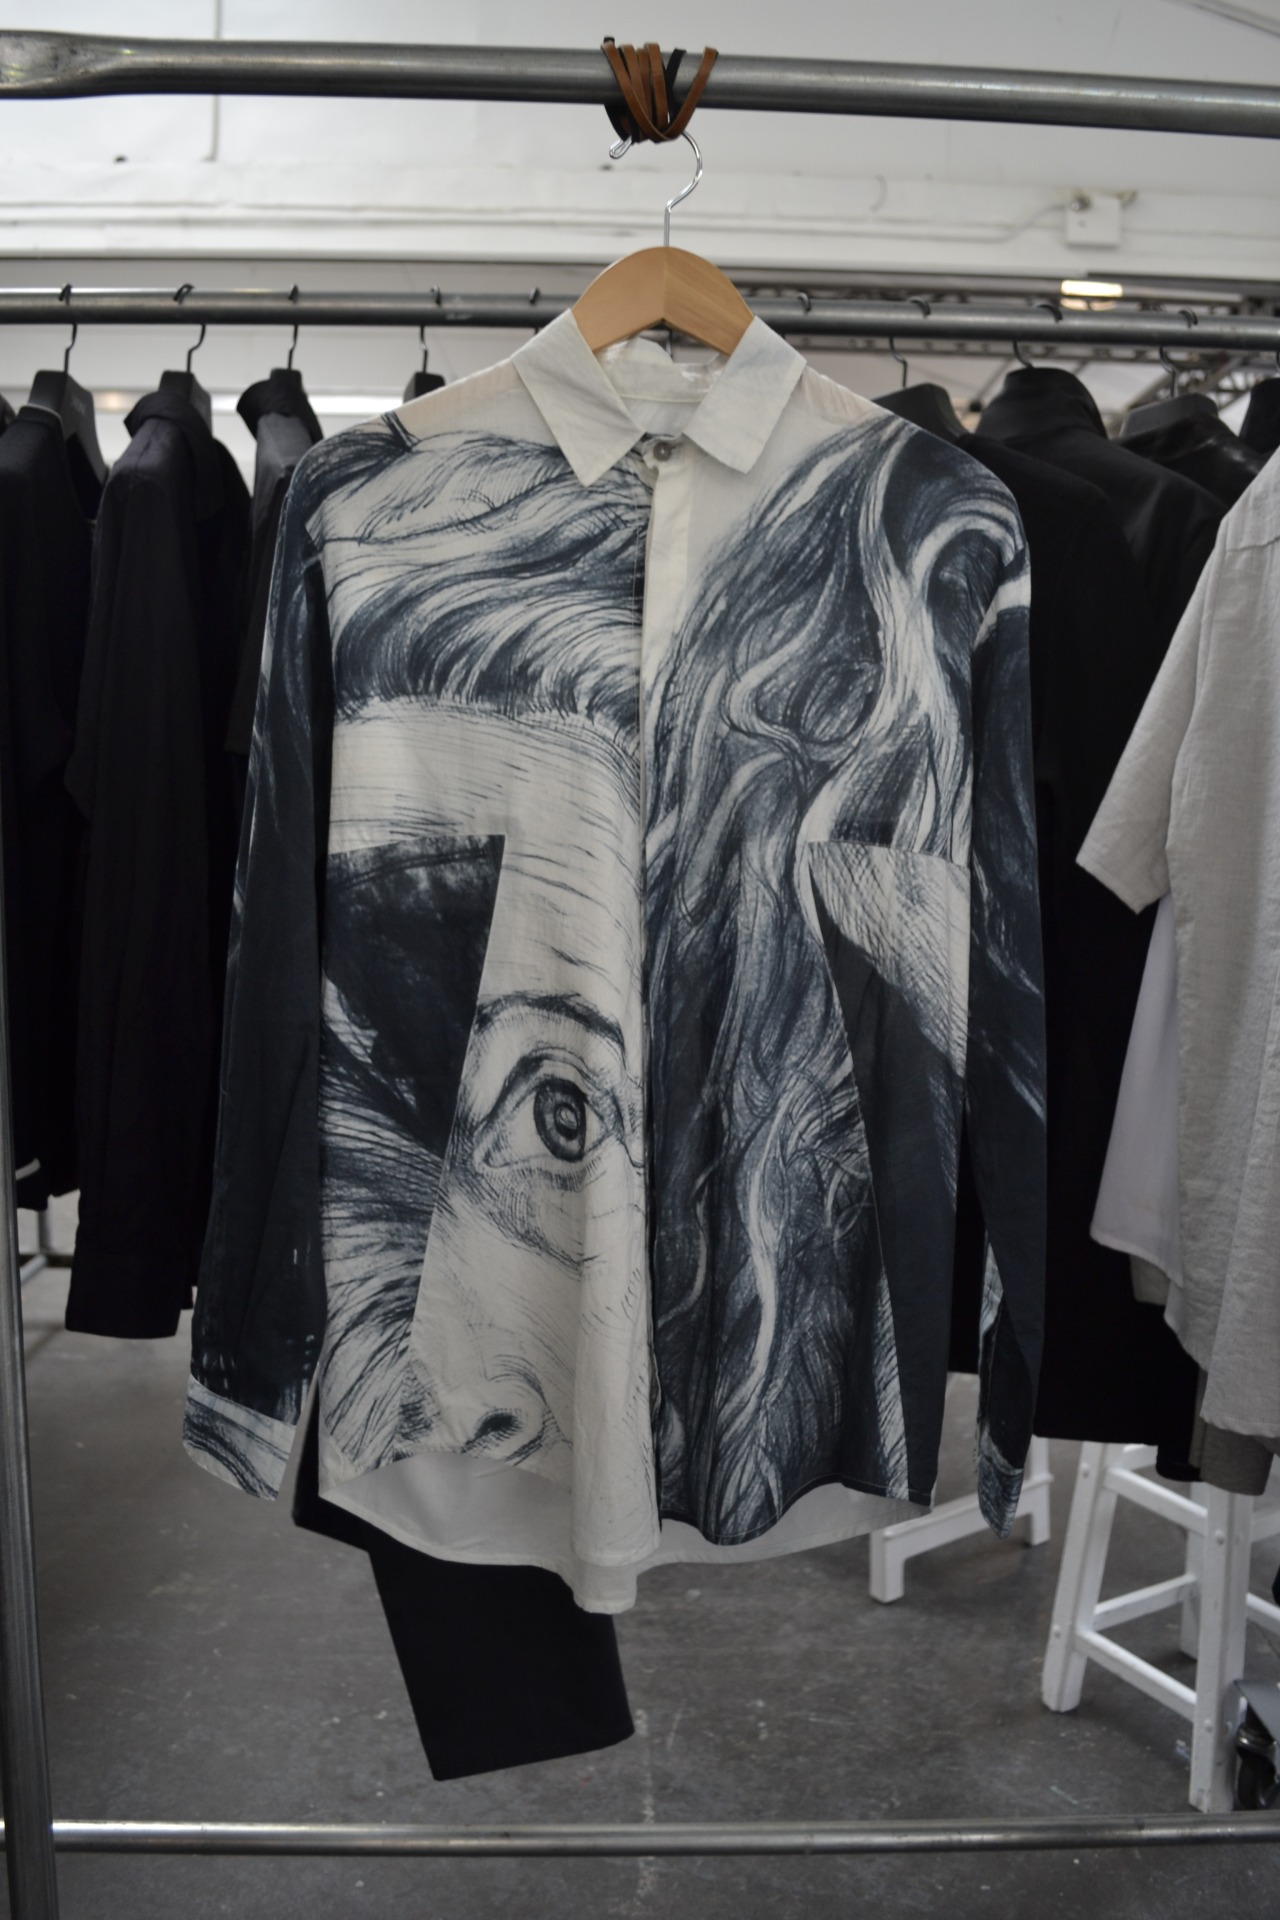 New York-based brand, House of 950 features incredible graphics on its button-downs like this haunting portrait print.